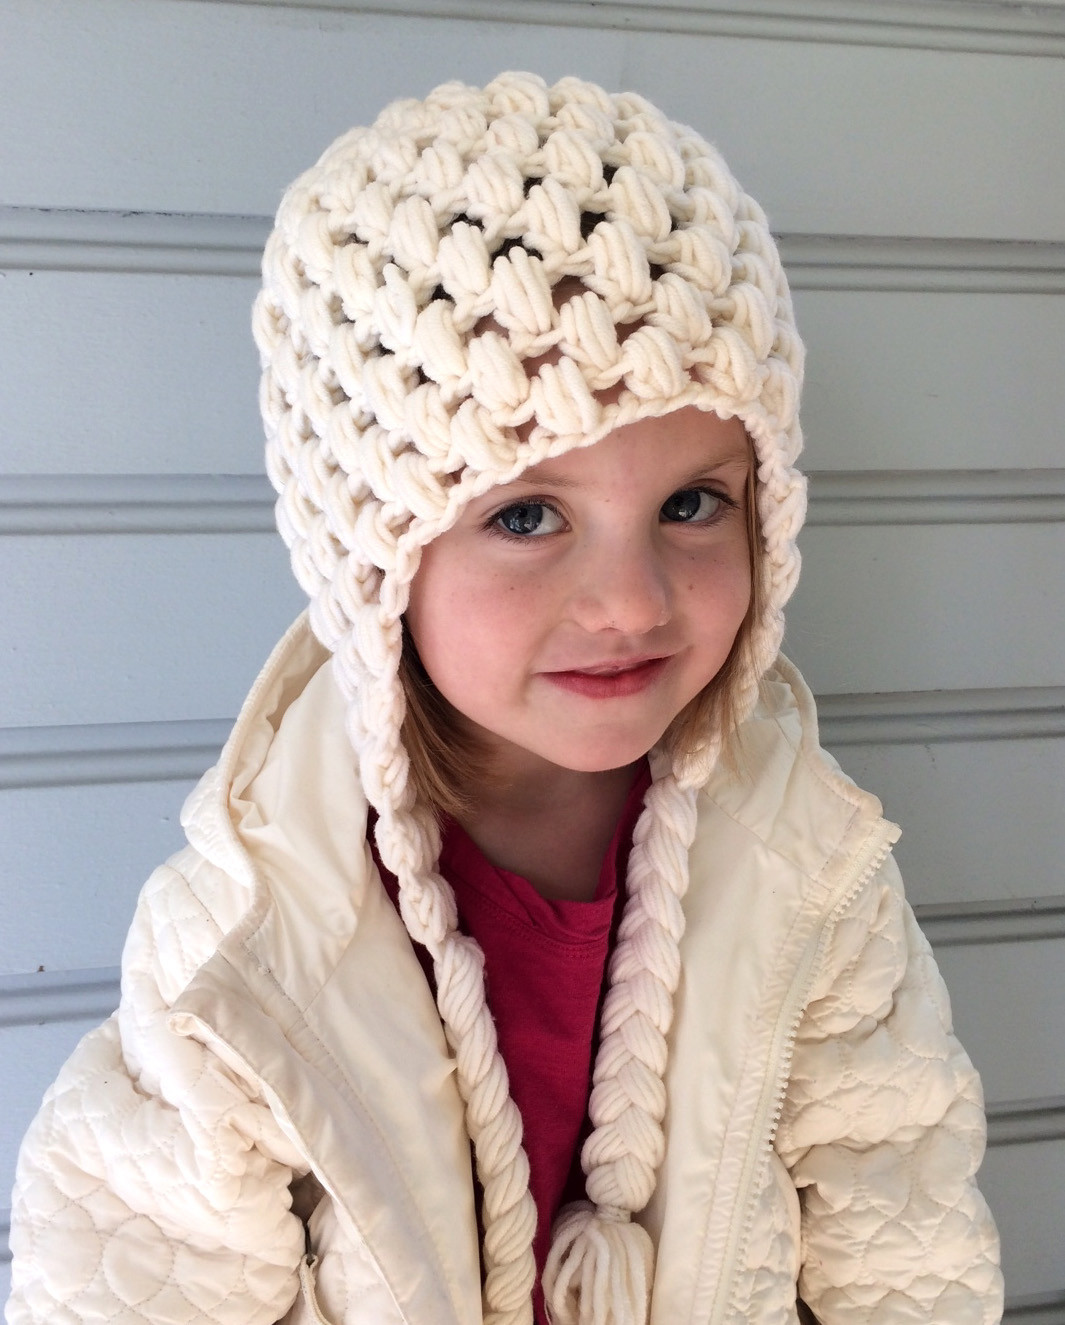 Crochet Stitches for Bulky Yarn Inspirational Free Crochet Hat Patterns Super Bulky Yarn Dancox for Of Amazing 48 Pics Crochet Stitches for Bulky Yarn